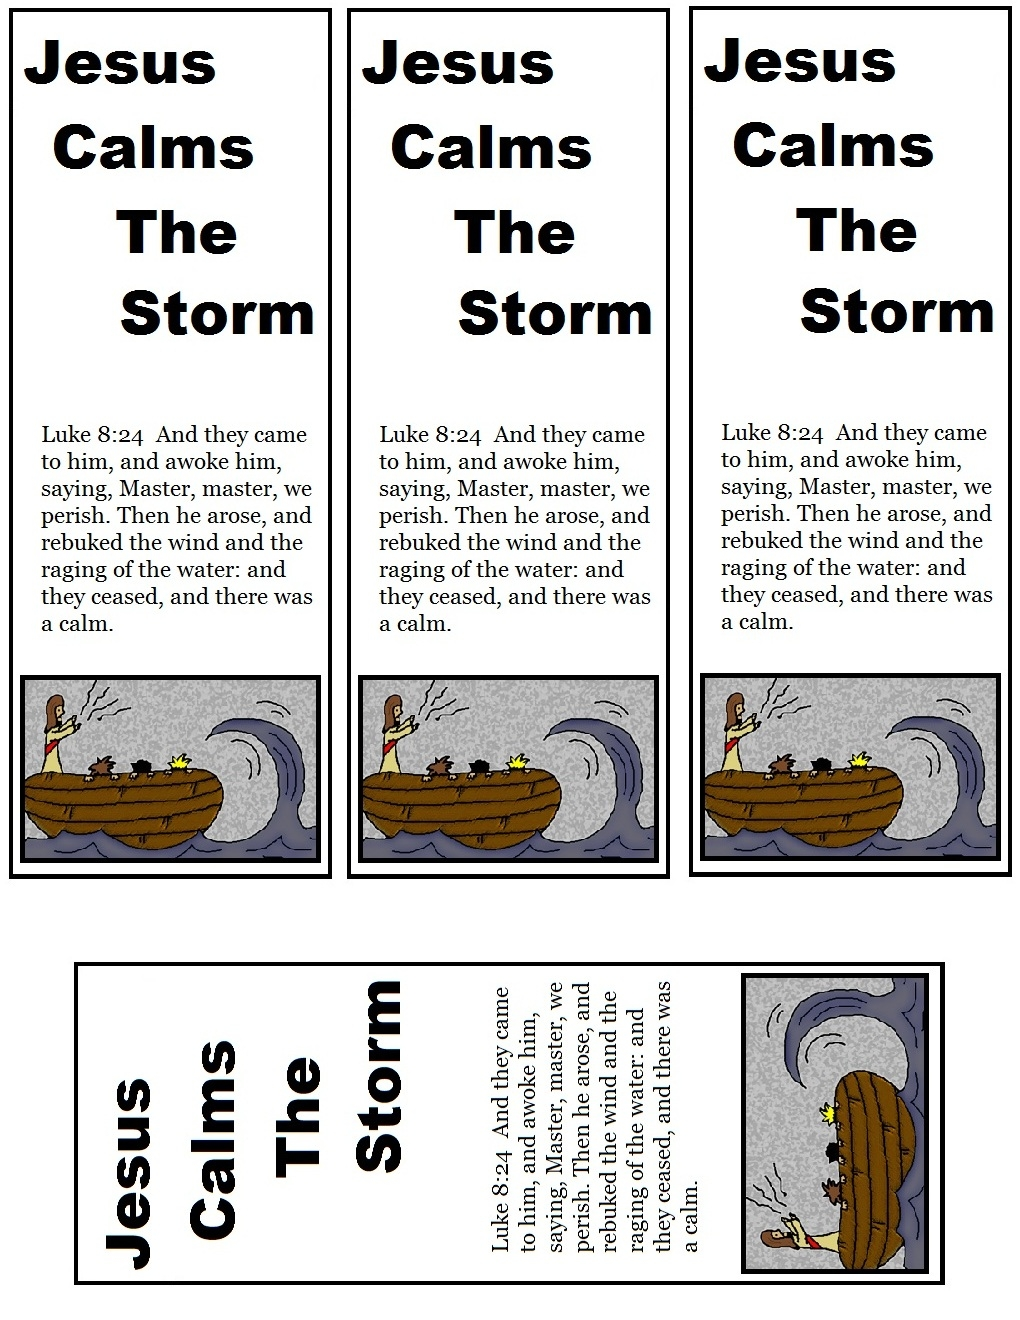 jesus calms the storm coloring page - jesus calms the storm sunday school lesson